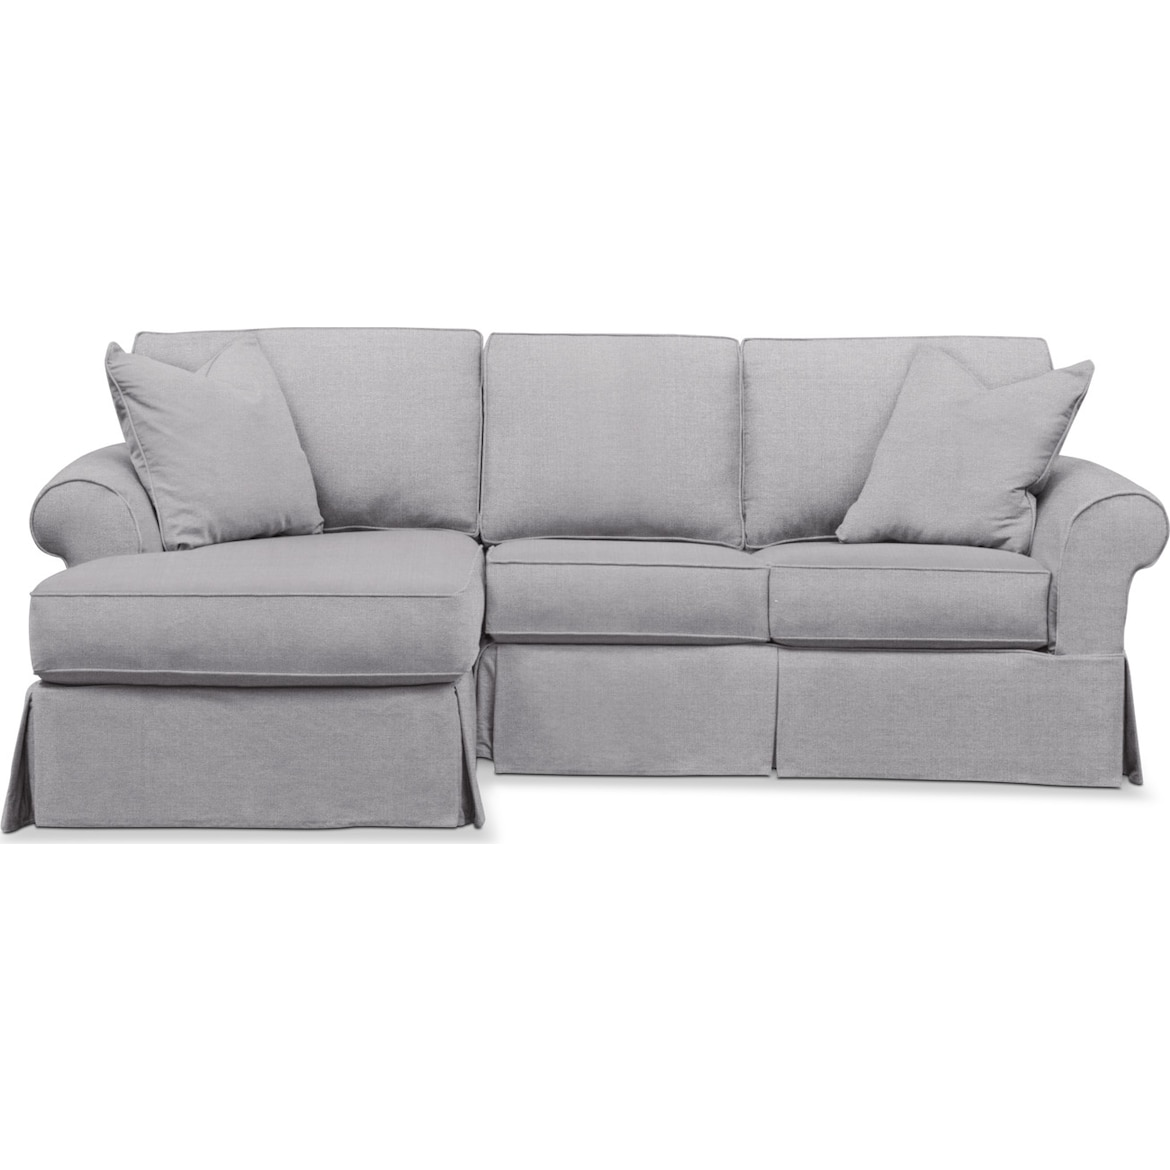 Phenomenal Sawyer 2 Piece Small Slipcover Sectional With Chaise Gmtry Best Dining Table And Chair Ideas Images Gmtryco